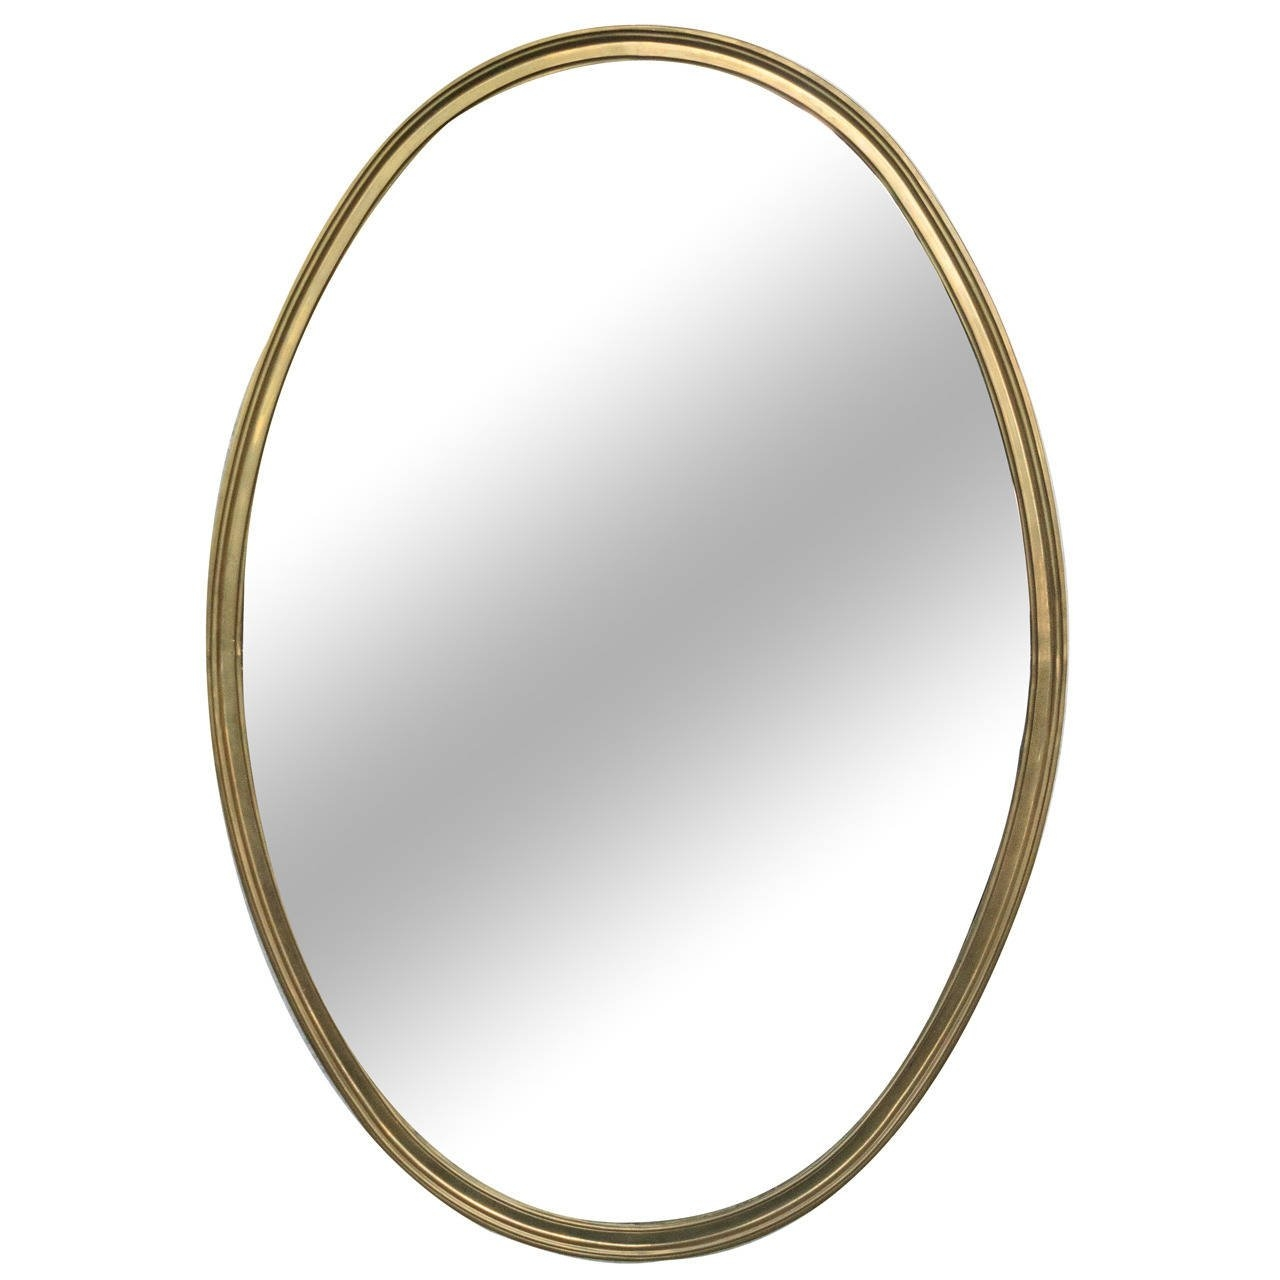 1950s French Brass Oval Shaped Mirror At 1stdibs Inside French Oval Mirror (View 10 of 15)